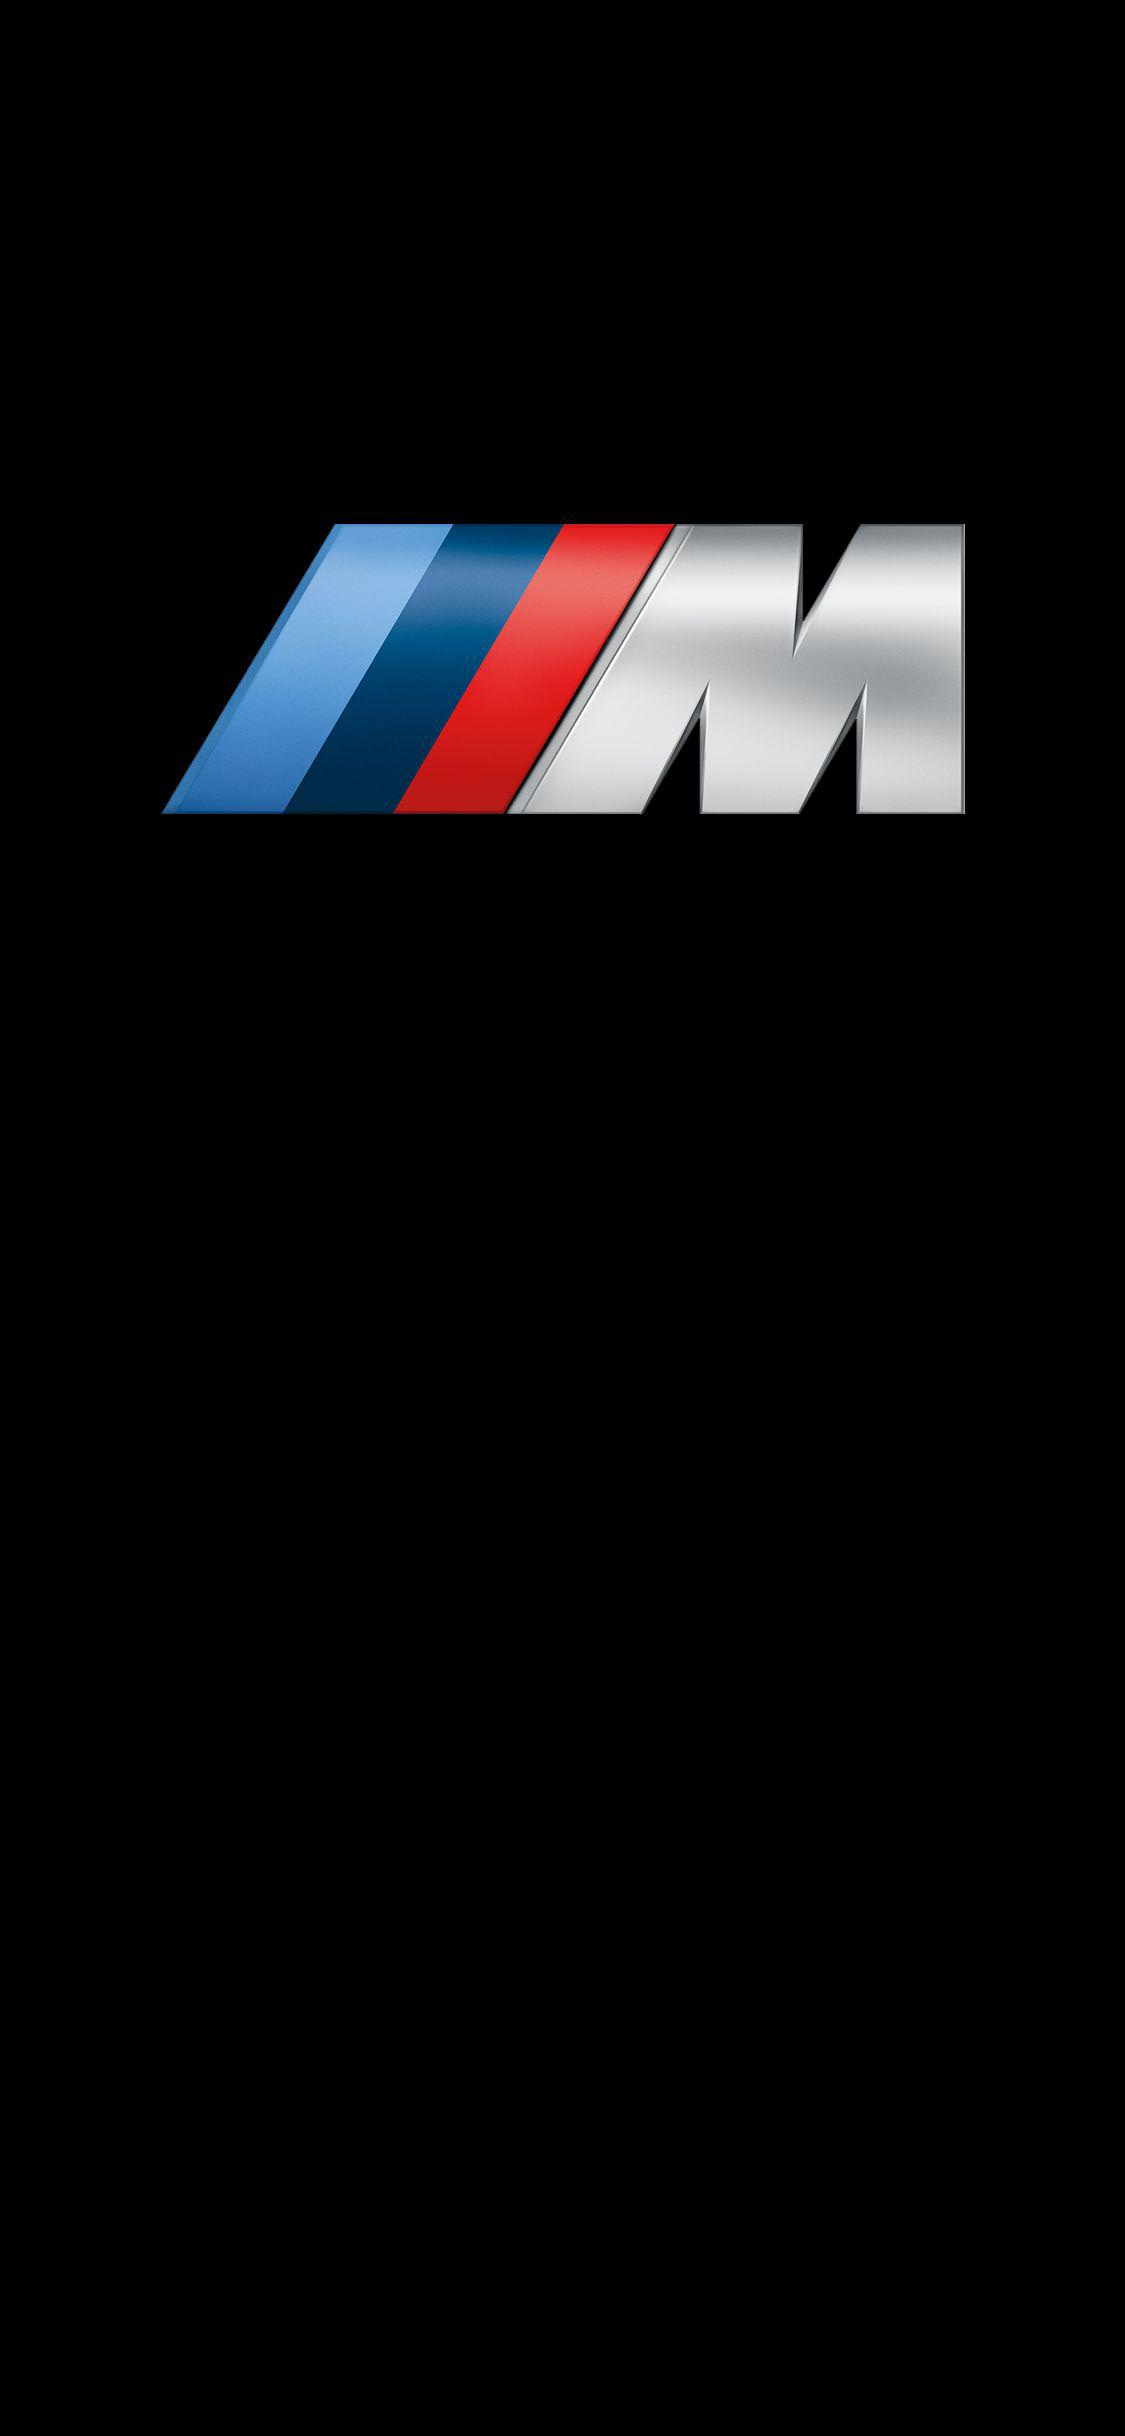 Bmw M Wallpaper Iphone 30 Wallpapers Adorable Wallpapers